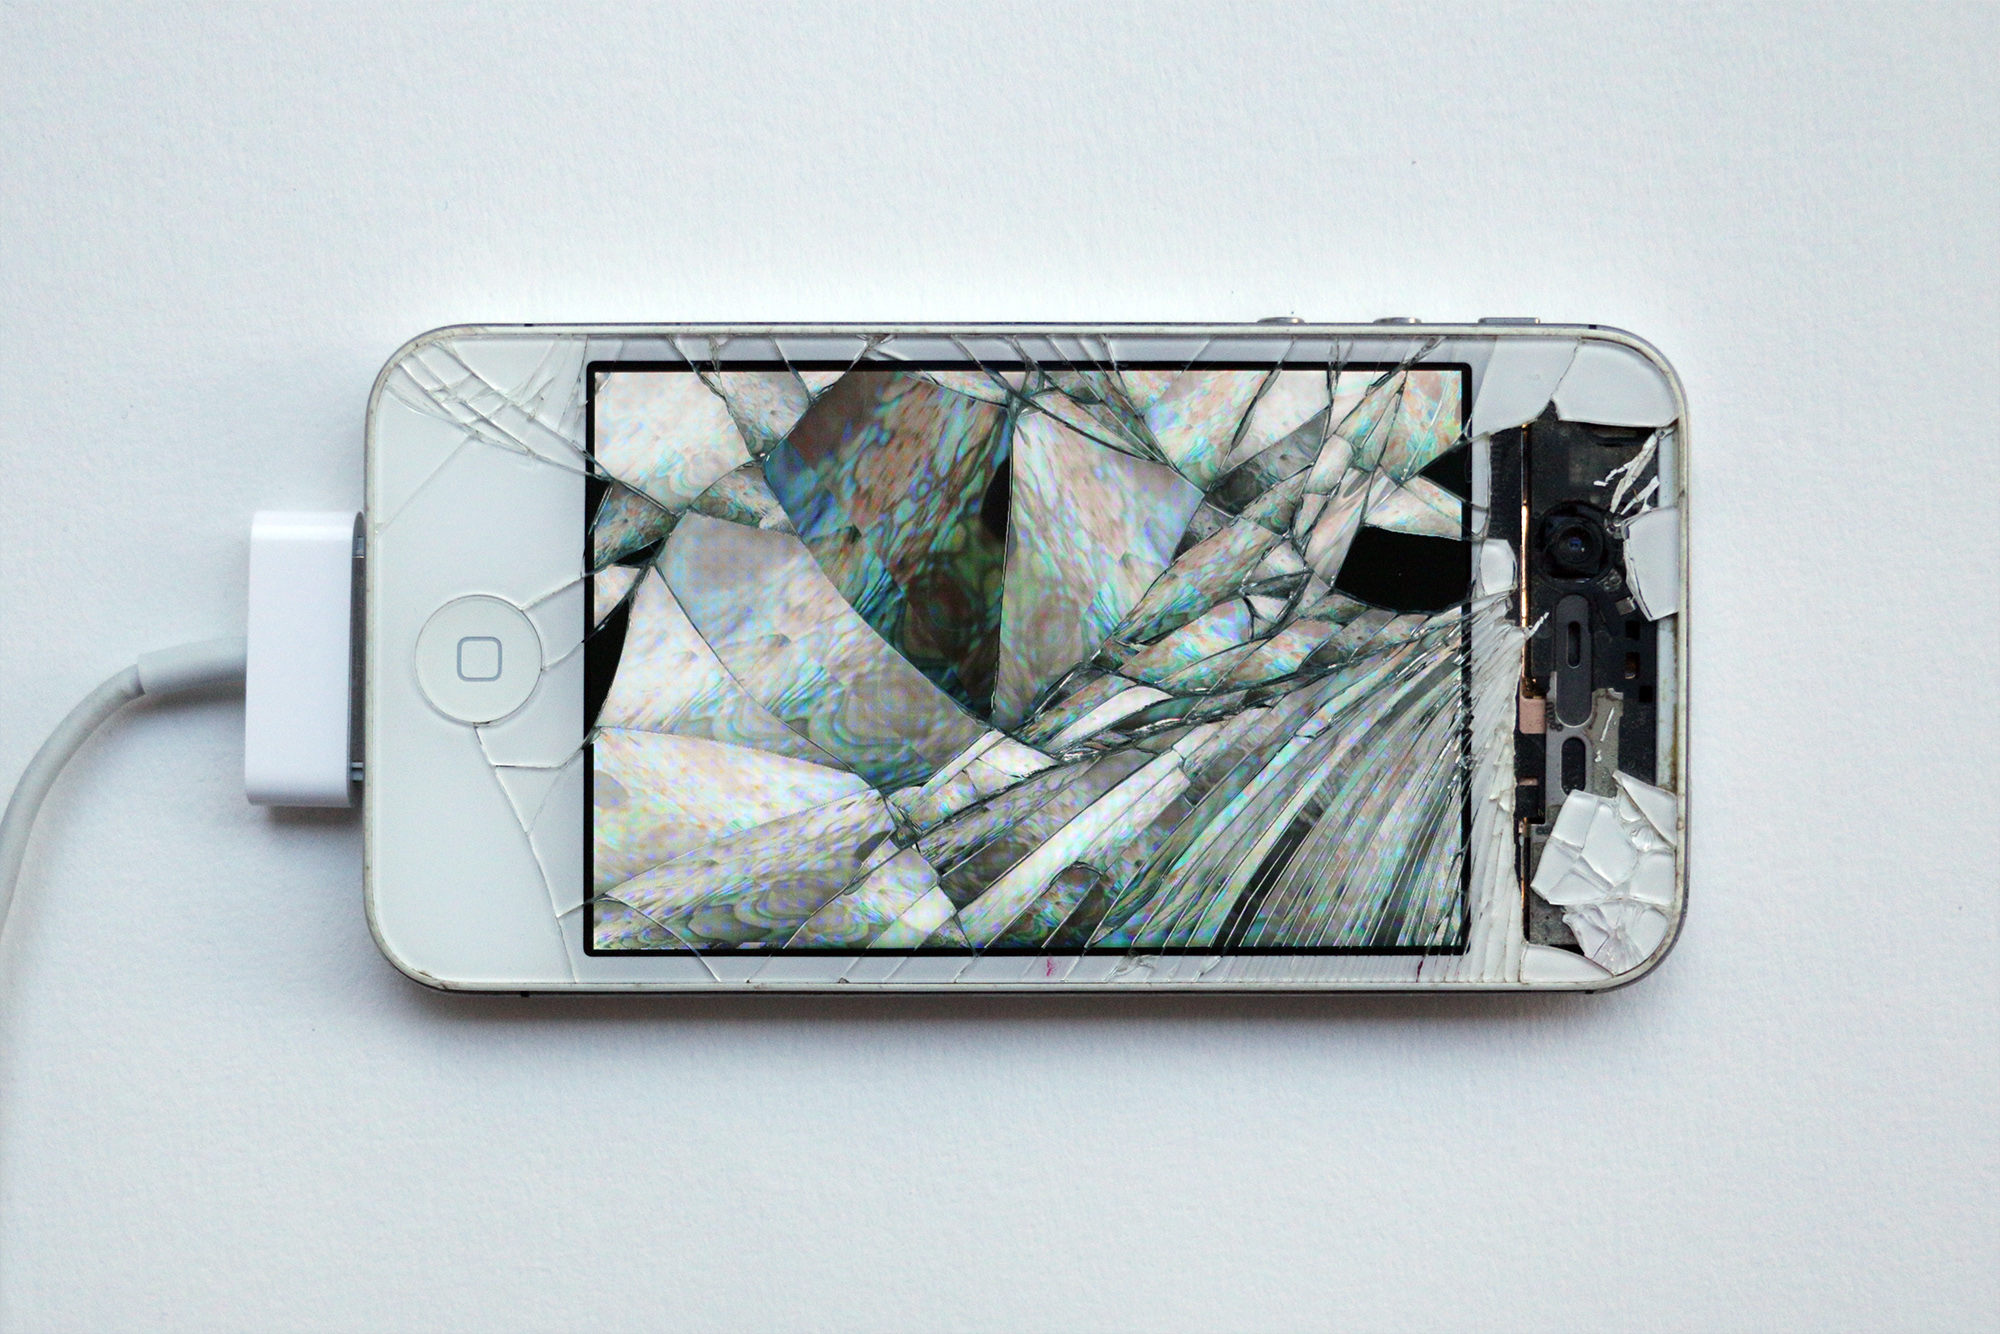 Émilie Brout & Maxime Marion. <em>Return of the Broken Screens (Apple iPhone 4 II)</em>, 2016. Broken found smart-phone, video, 4 3/4 x 2 1/4 inches (12 x 5.7 cm)